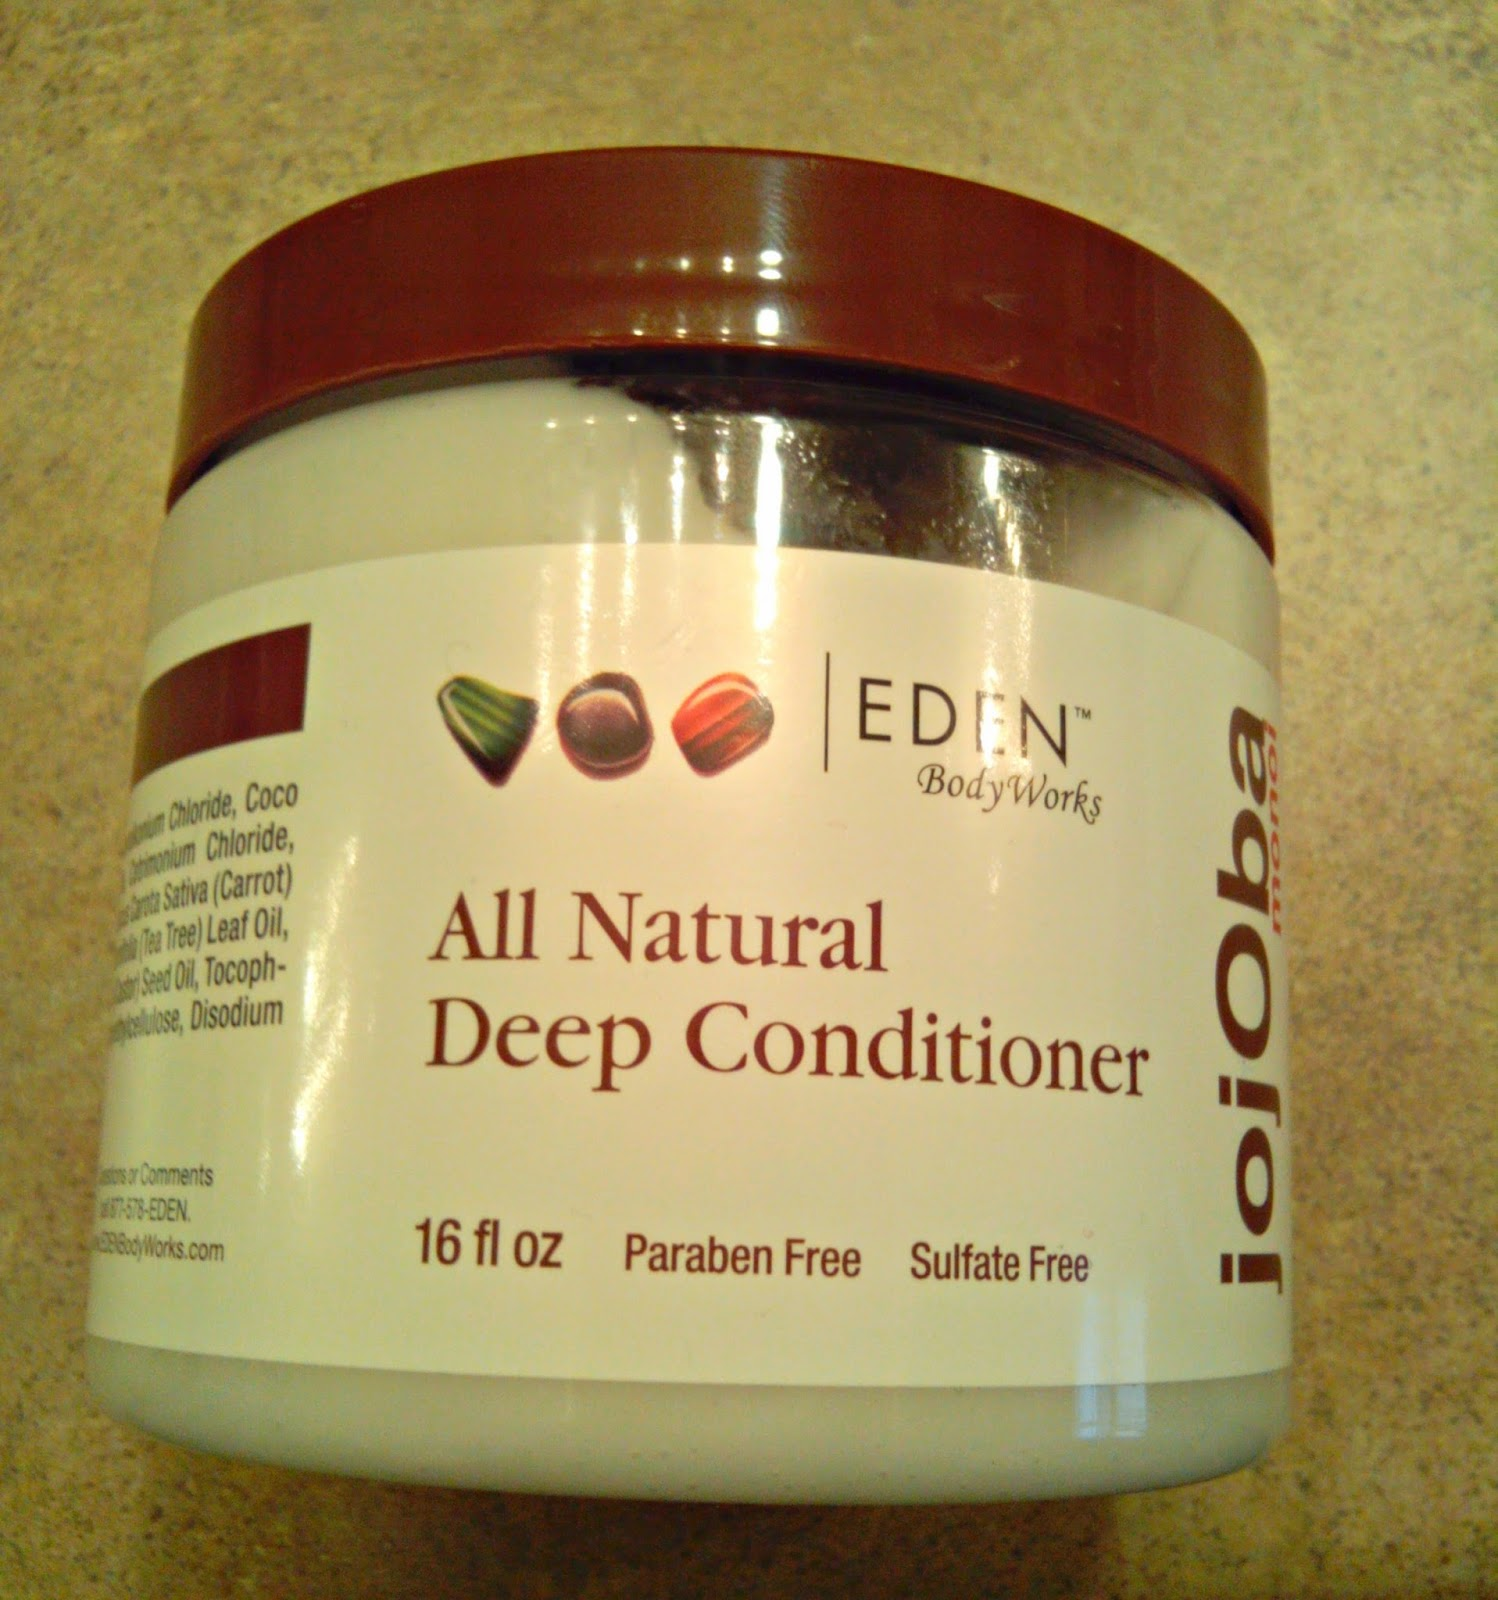 Hot Head, Thermal Hair Care, hair care, Microwavable, Deep Conditioning Cap, hair product Review, eden body works, deep conditioner, all natural ingredients, natural hair deep conditioner